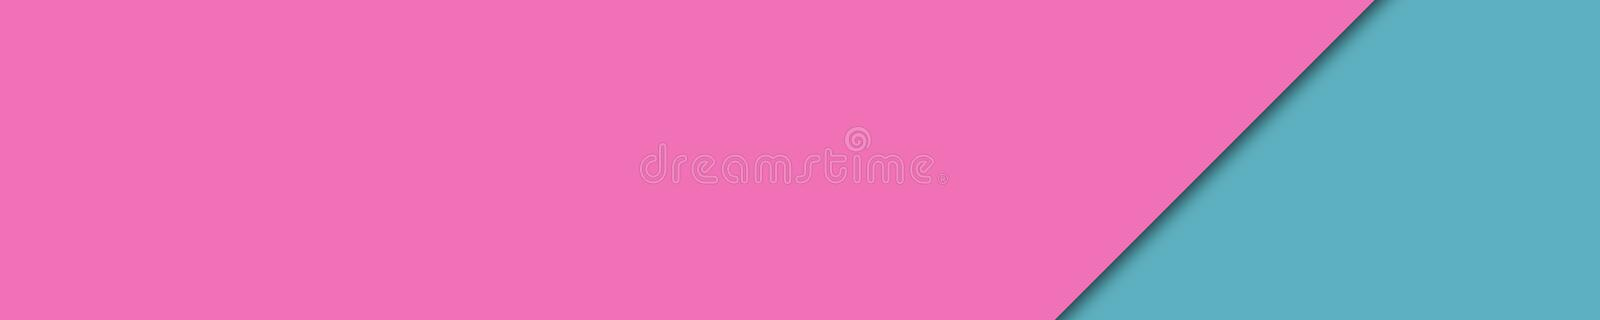 Elegant banner pink and turquoise colors for website royalty free stock images